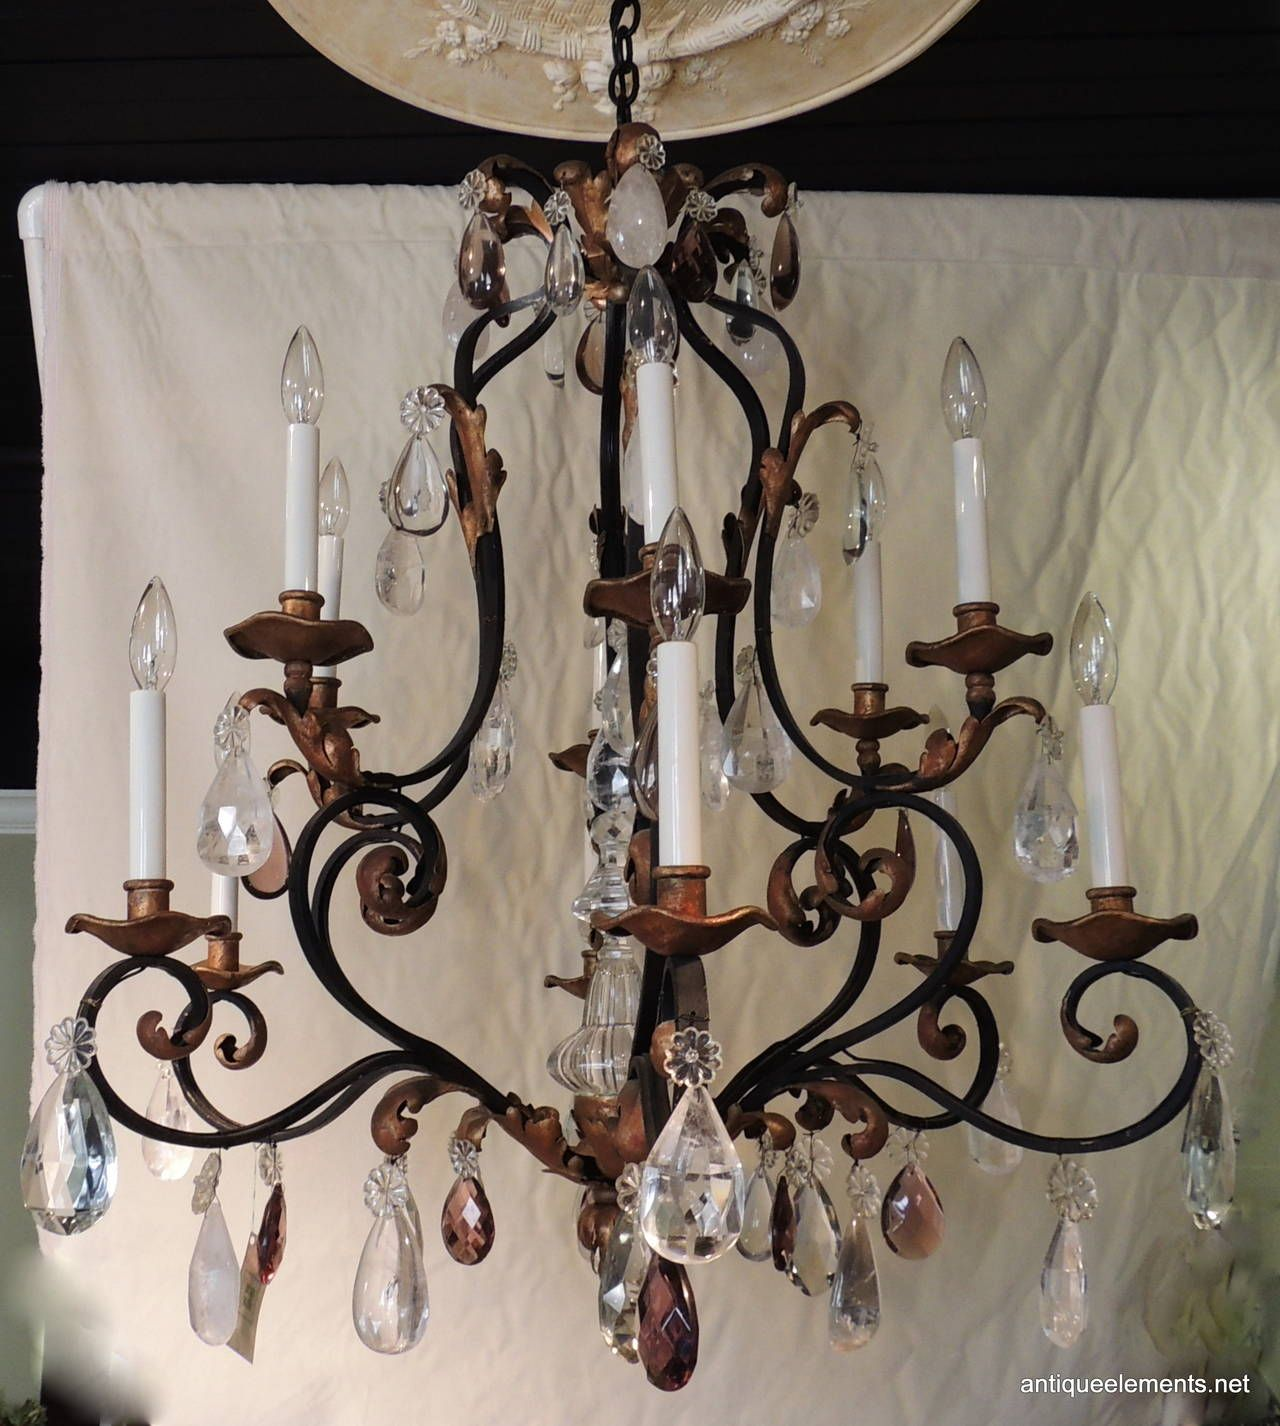 Beautiful large wrought iron gilt chandelier with amethyst rock beautiful large wrought iron gilt chandelier with amethyst rock crystals arubaitofo Image collections